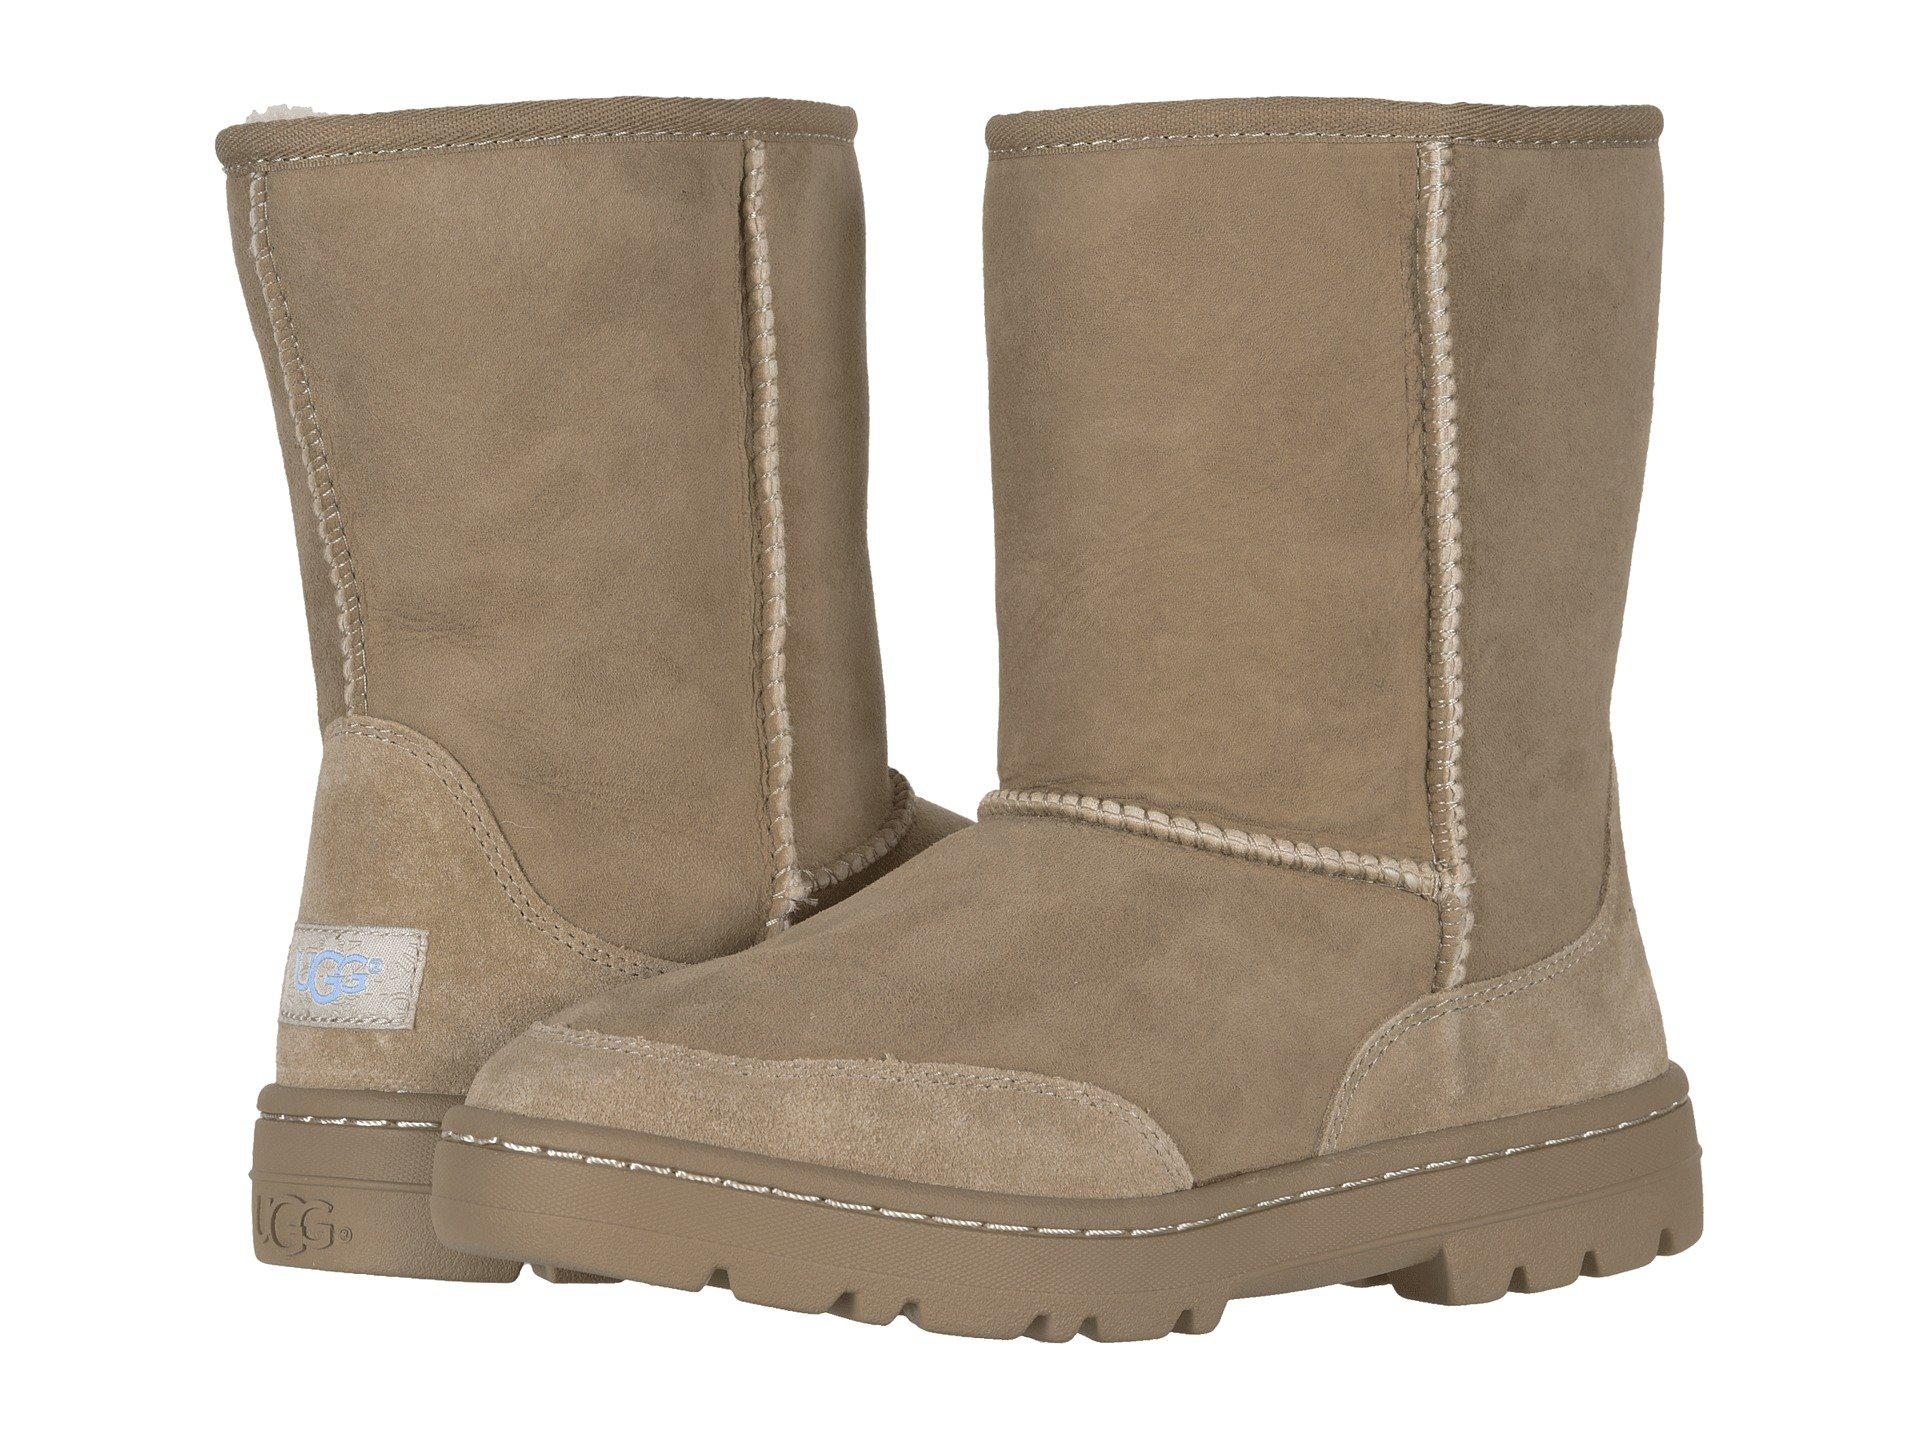 How short are the ultra short uggs?